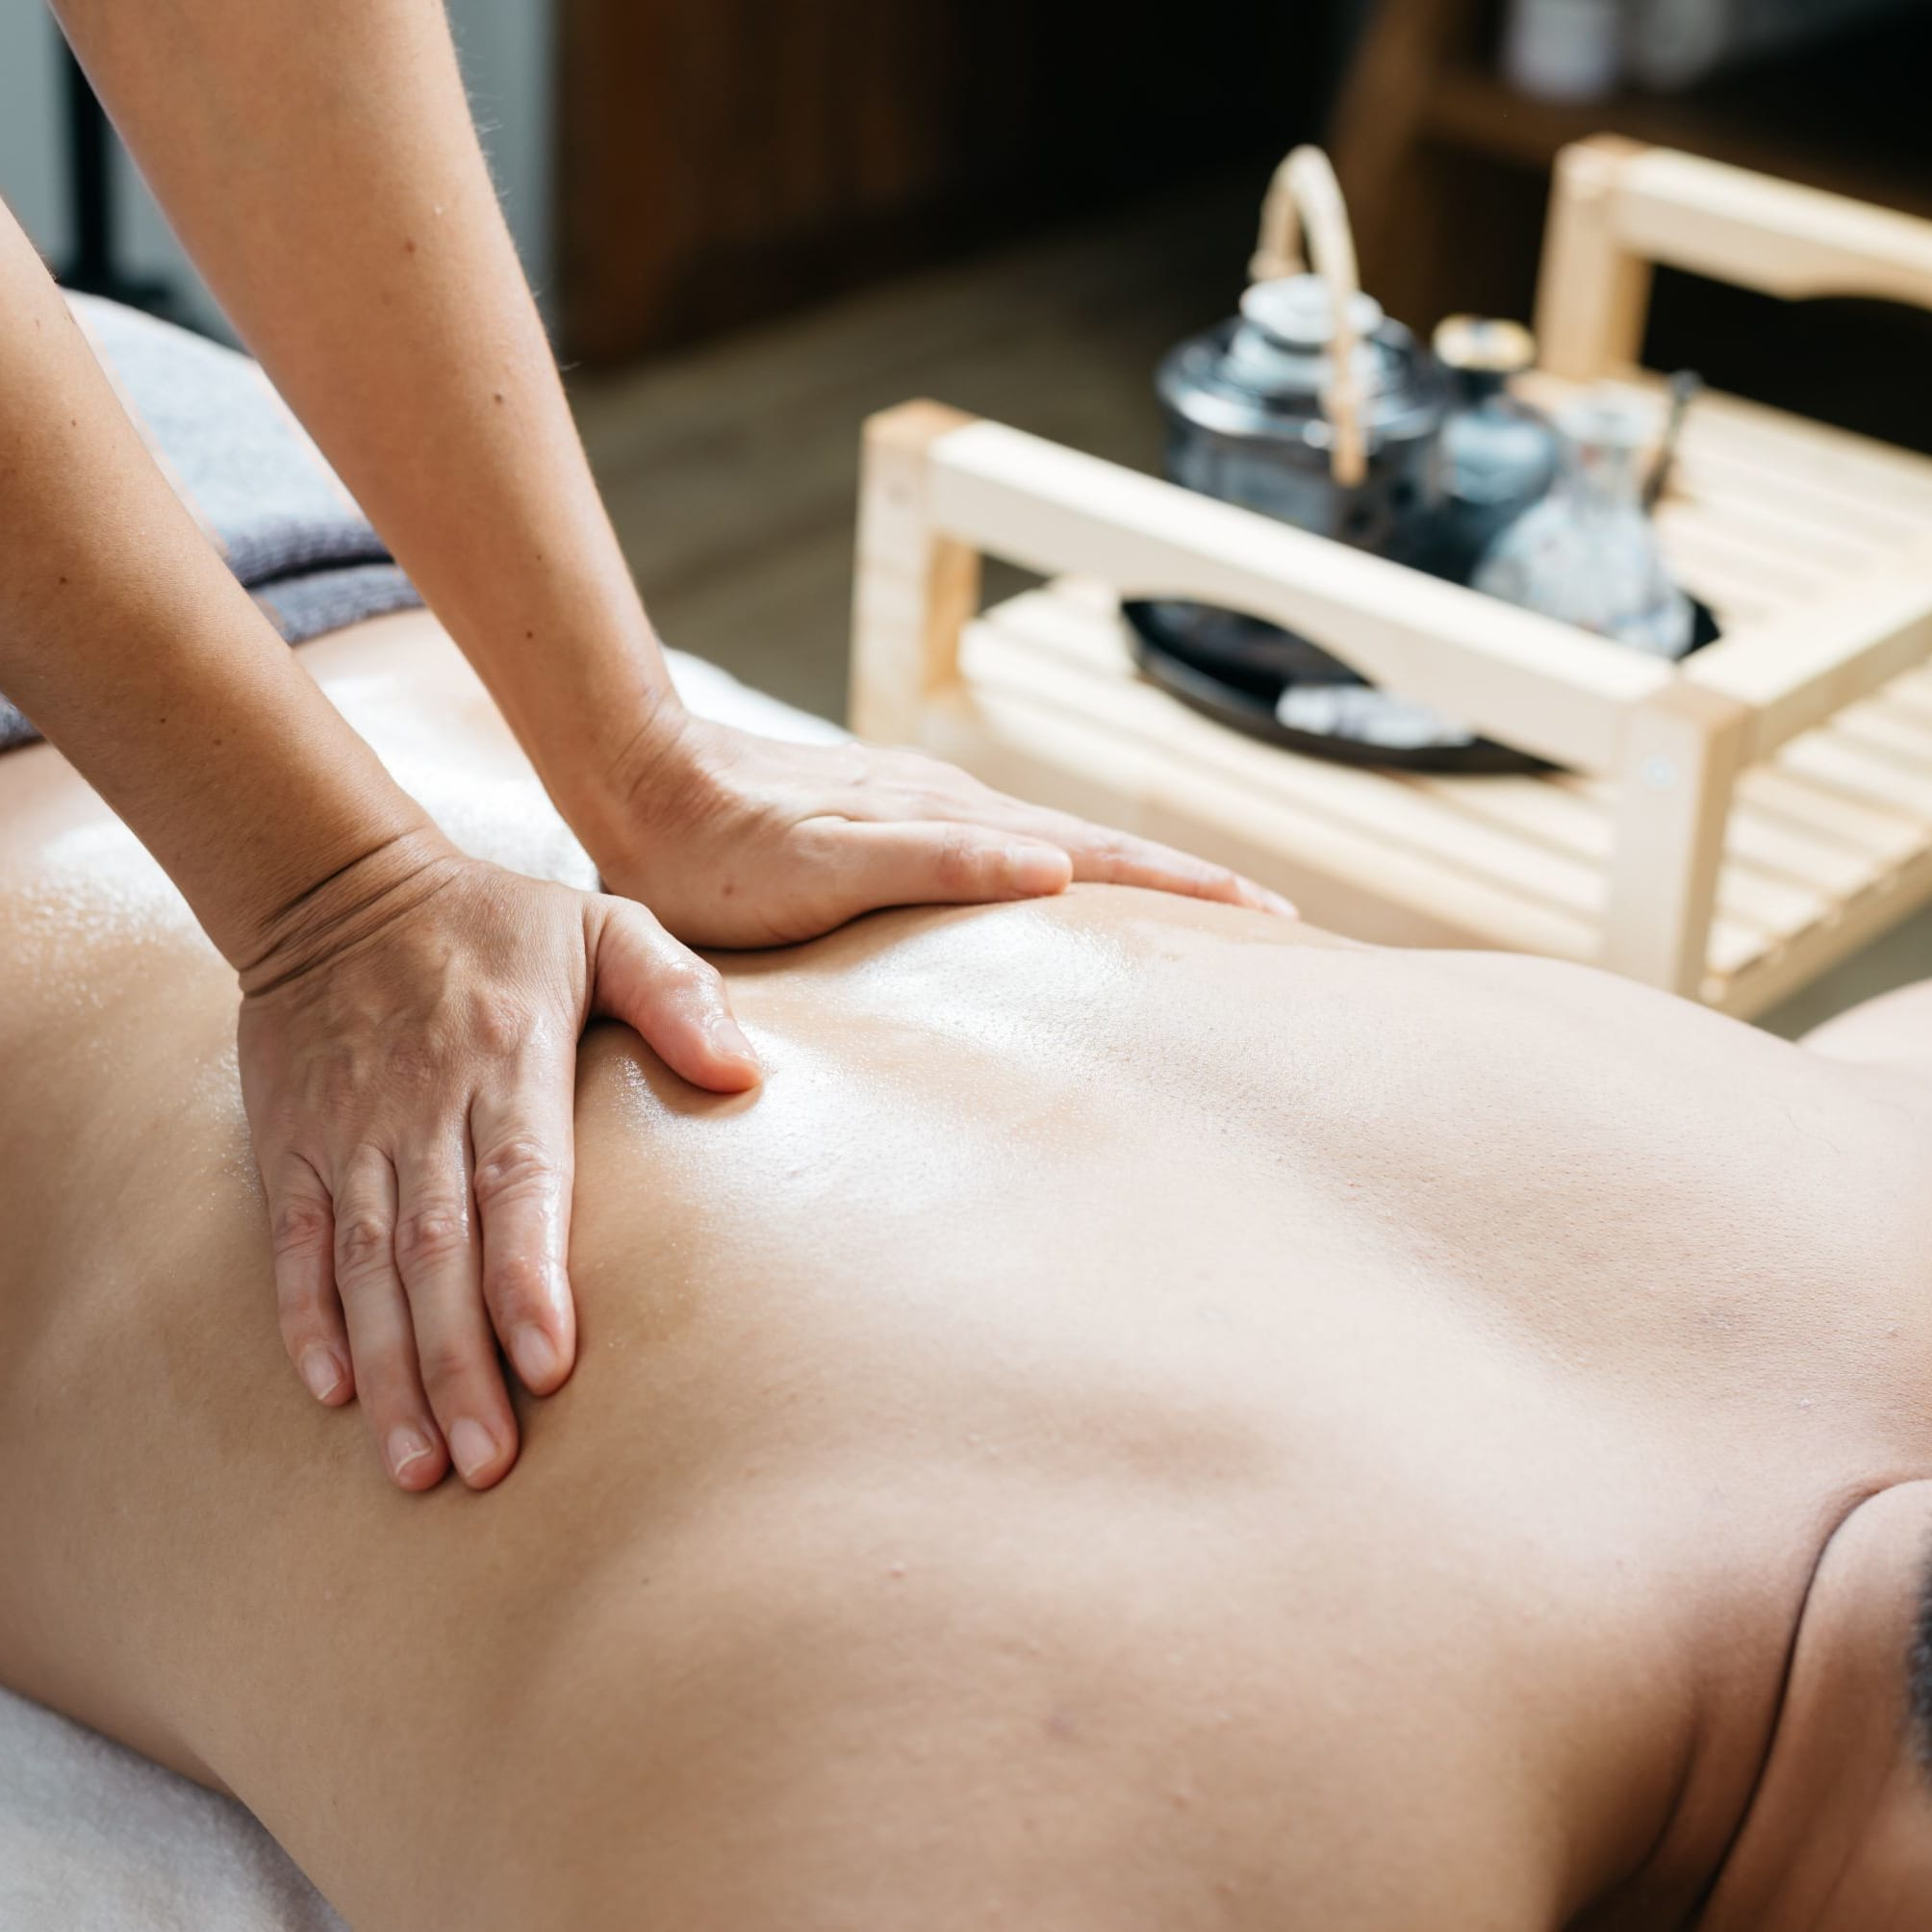 60-Min Body Massage for 2 people (1 Session)